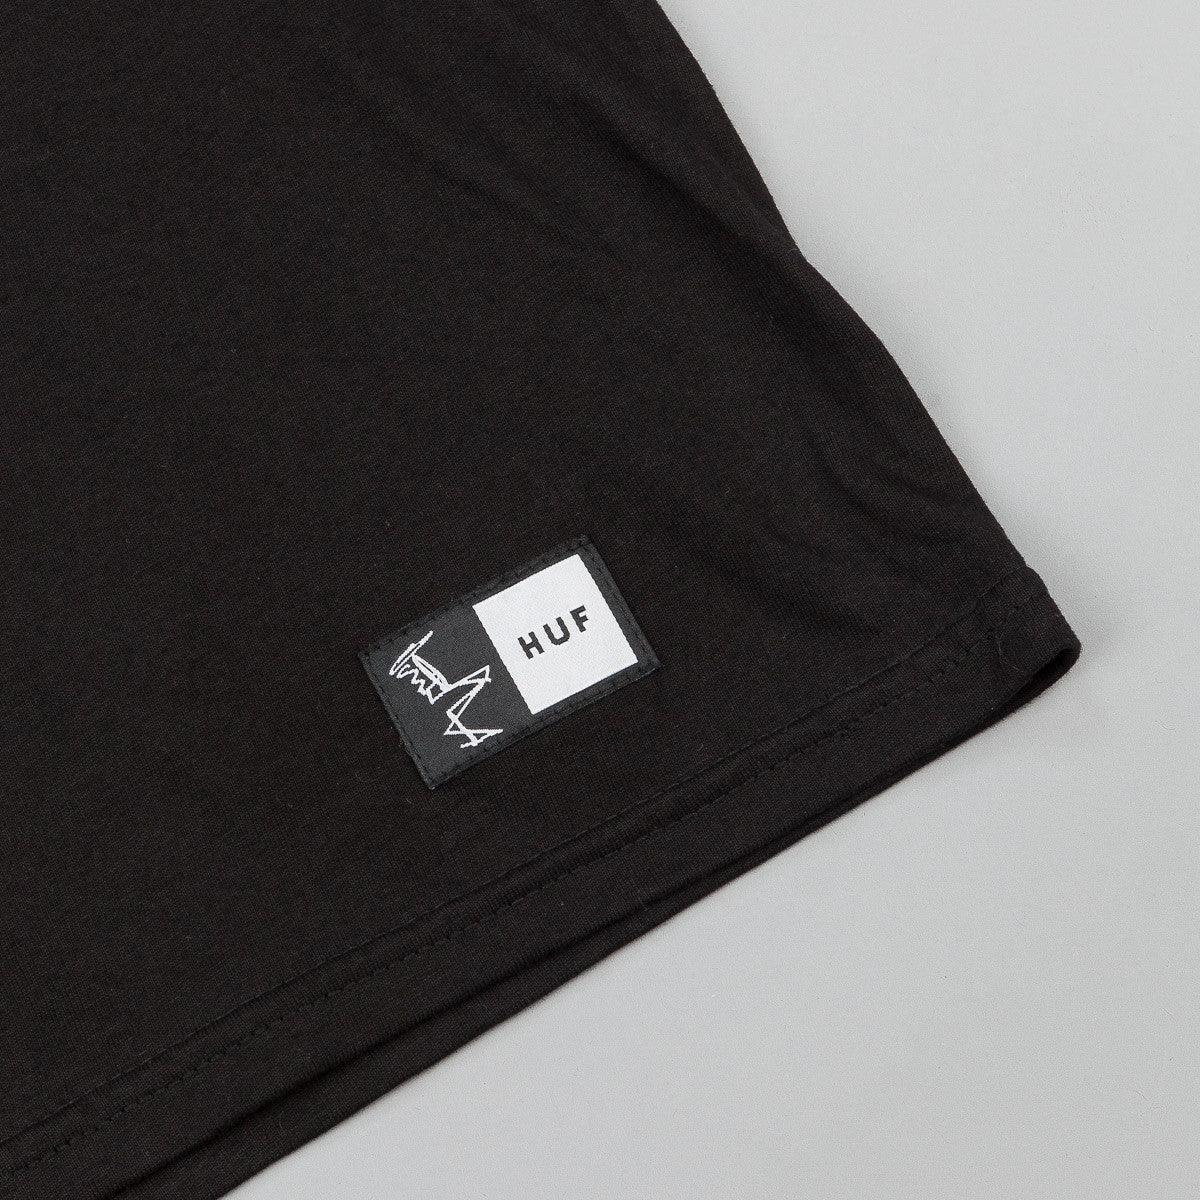 HUF X Stay High 149 T-Shirt - Black